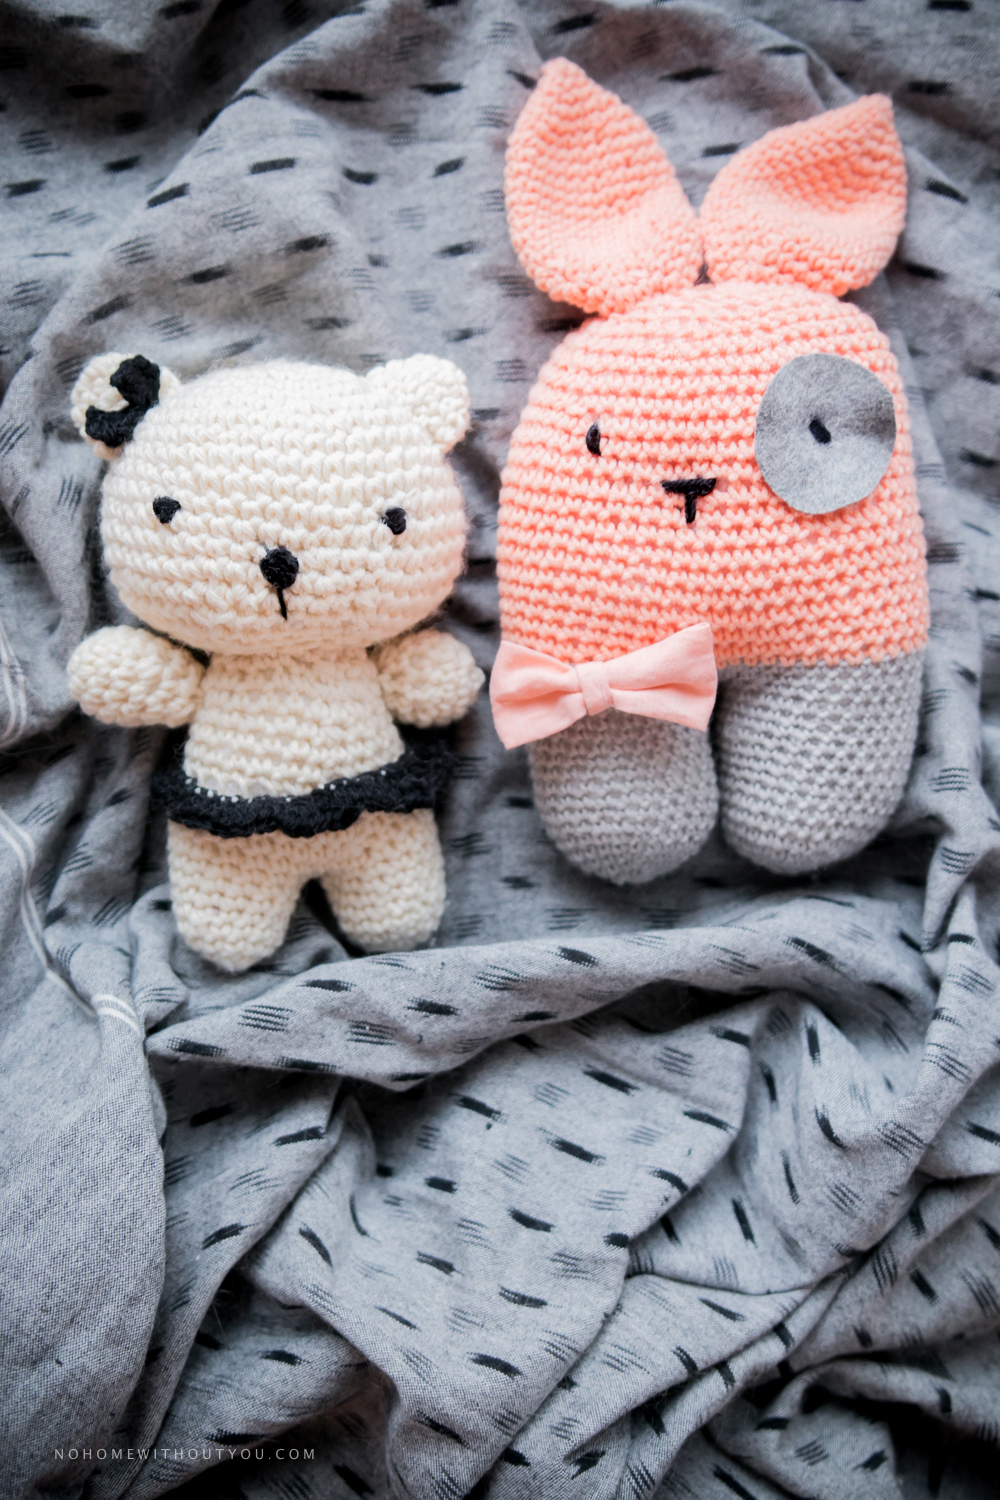 Crocheted amigurumi animals free pattern (5 of 10)